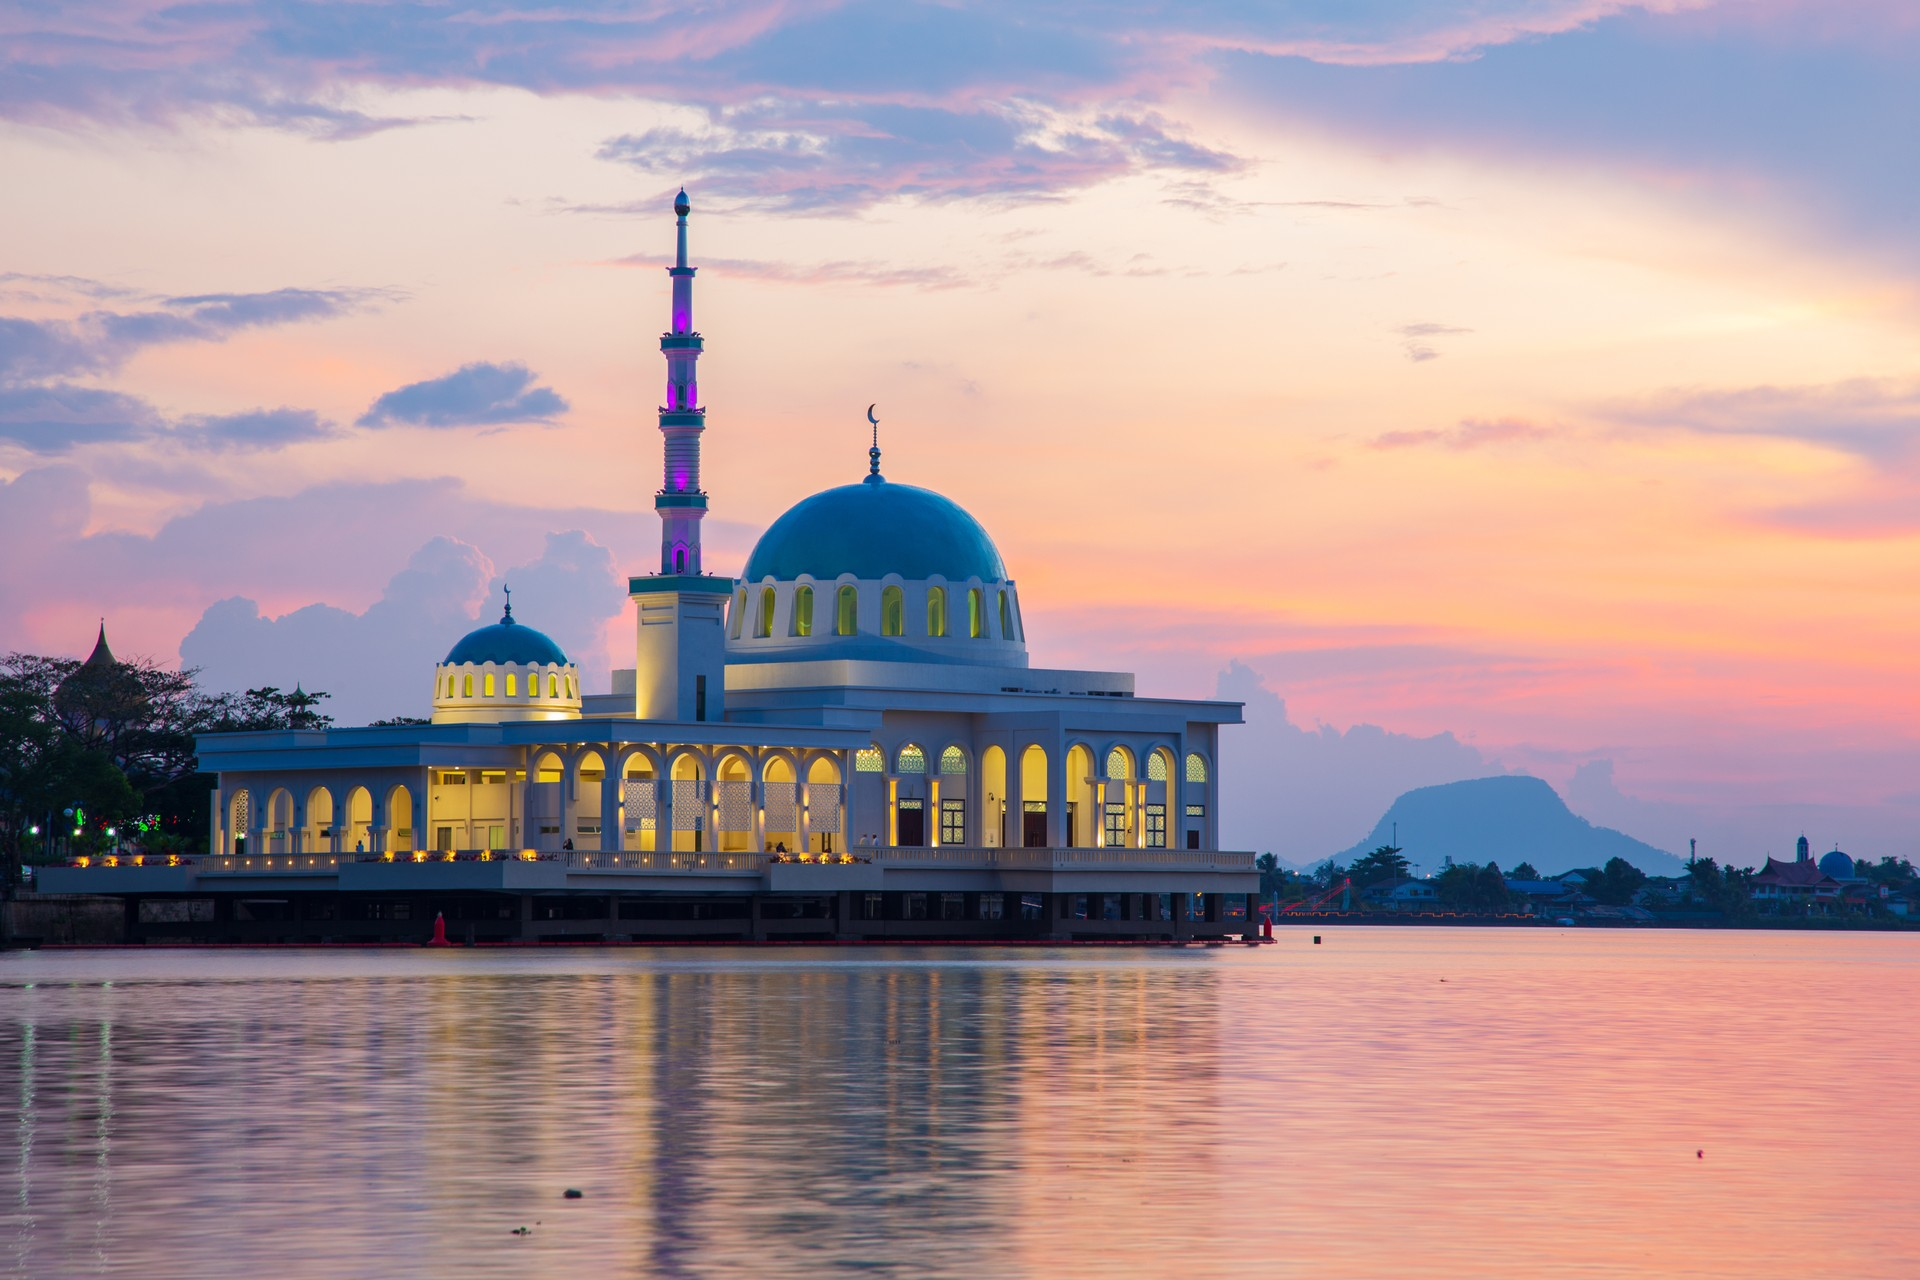 Borneo holidays: Floating mosque in Kuching